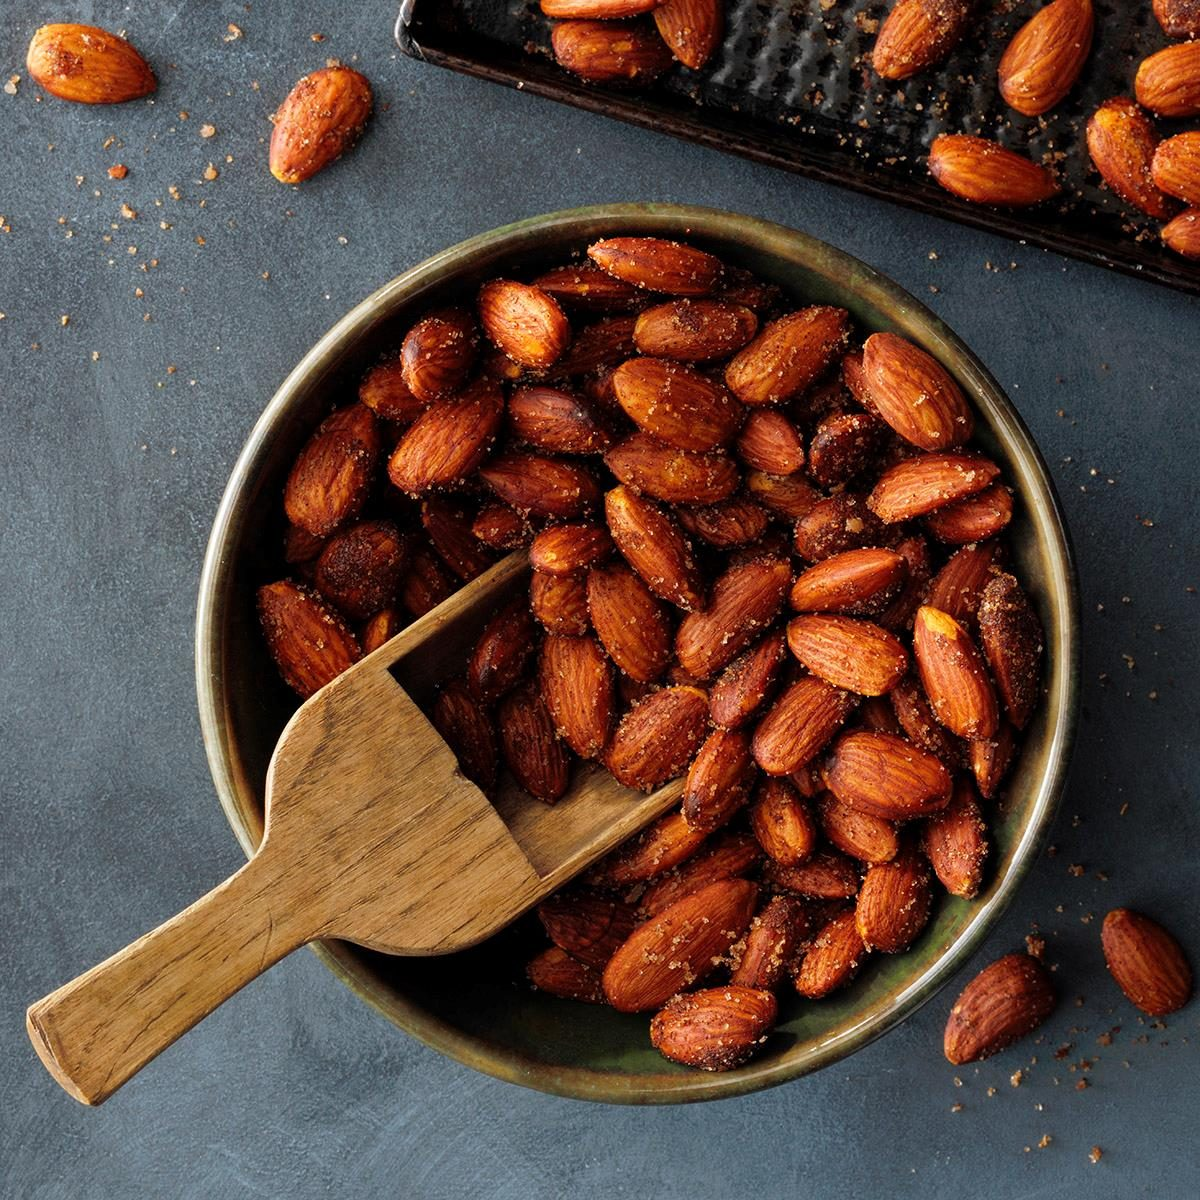 Spicy Almonds